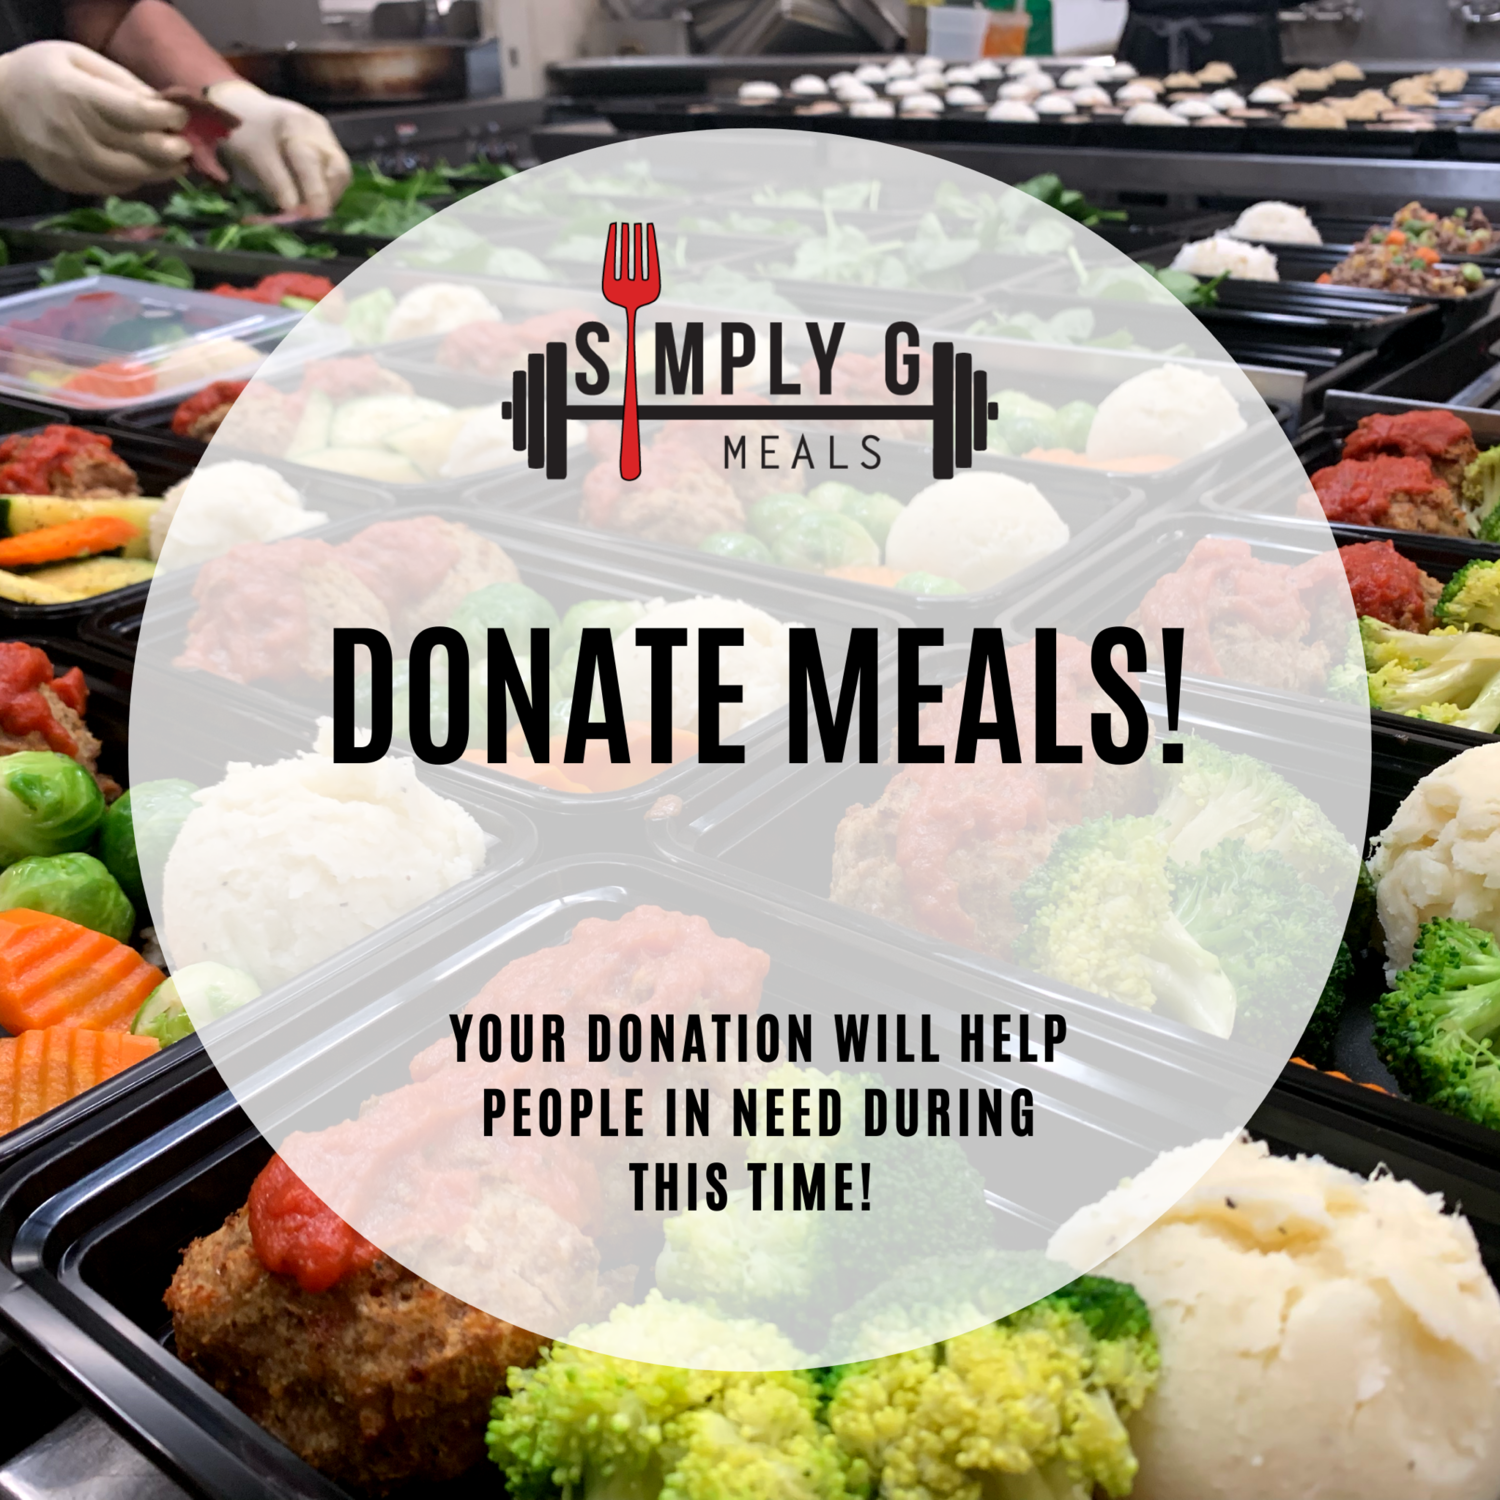 5 MEAL DONATION!